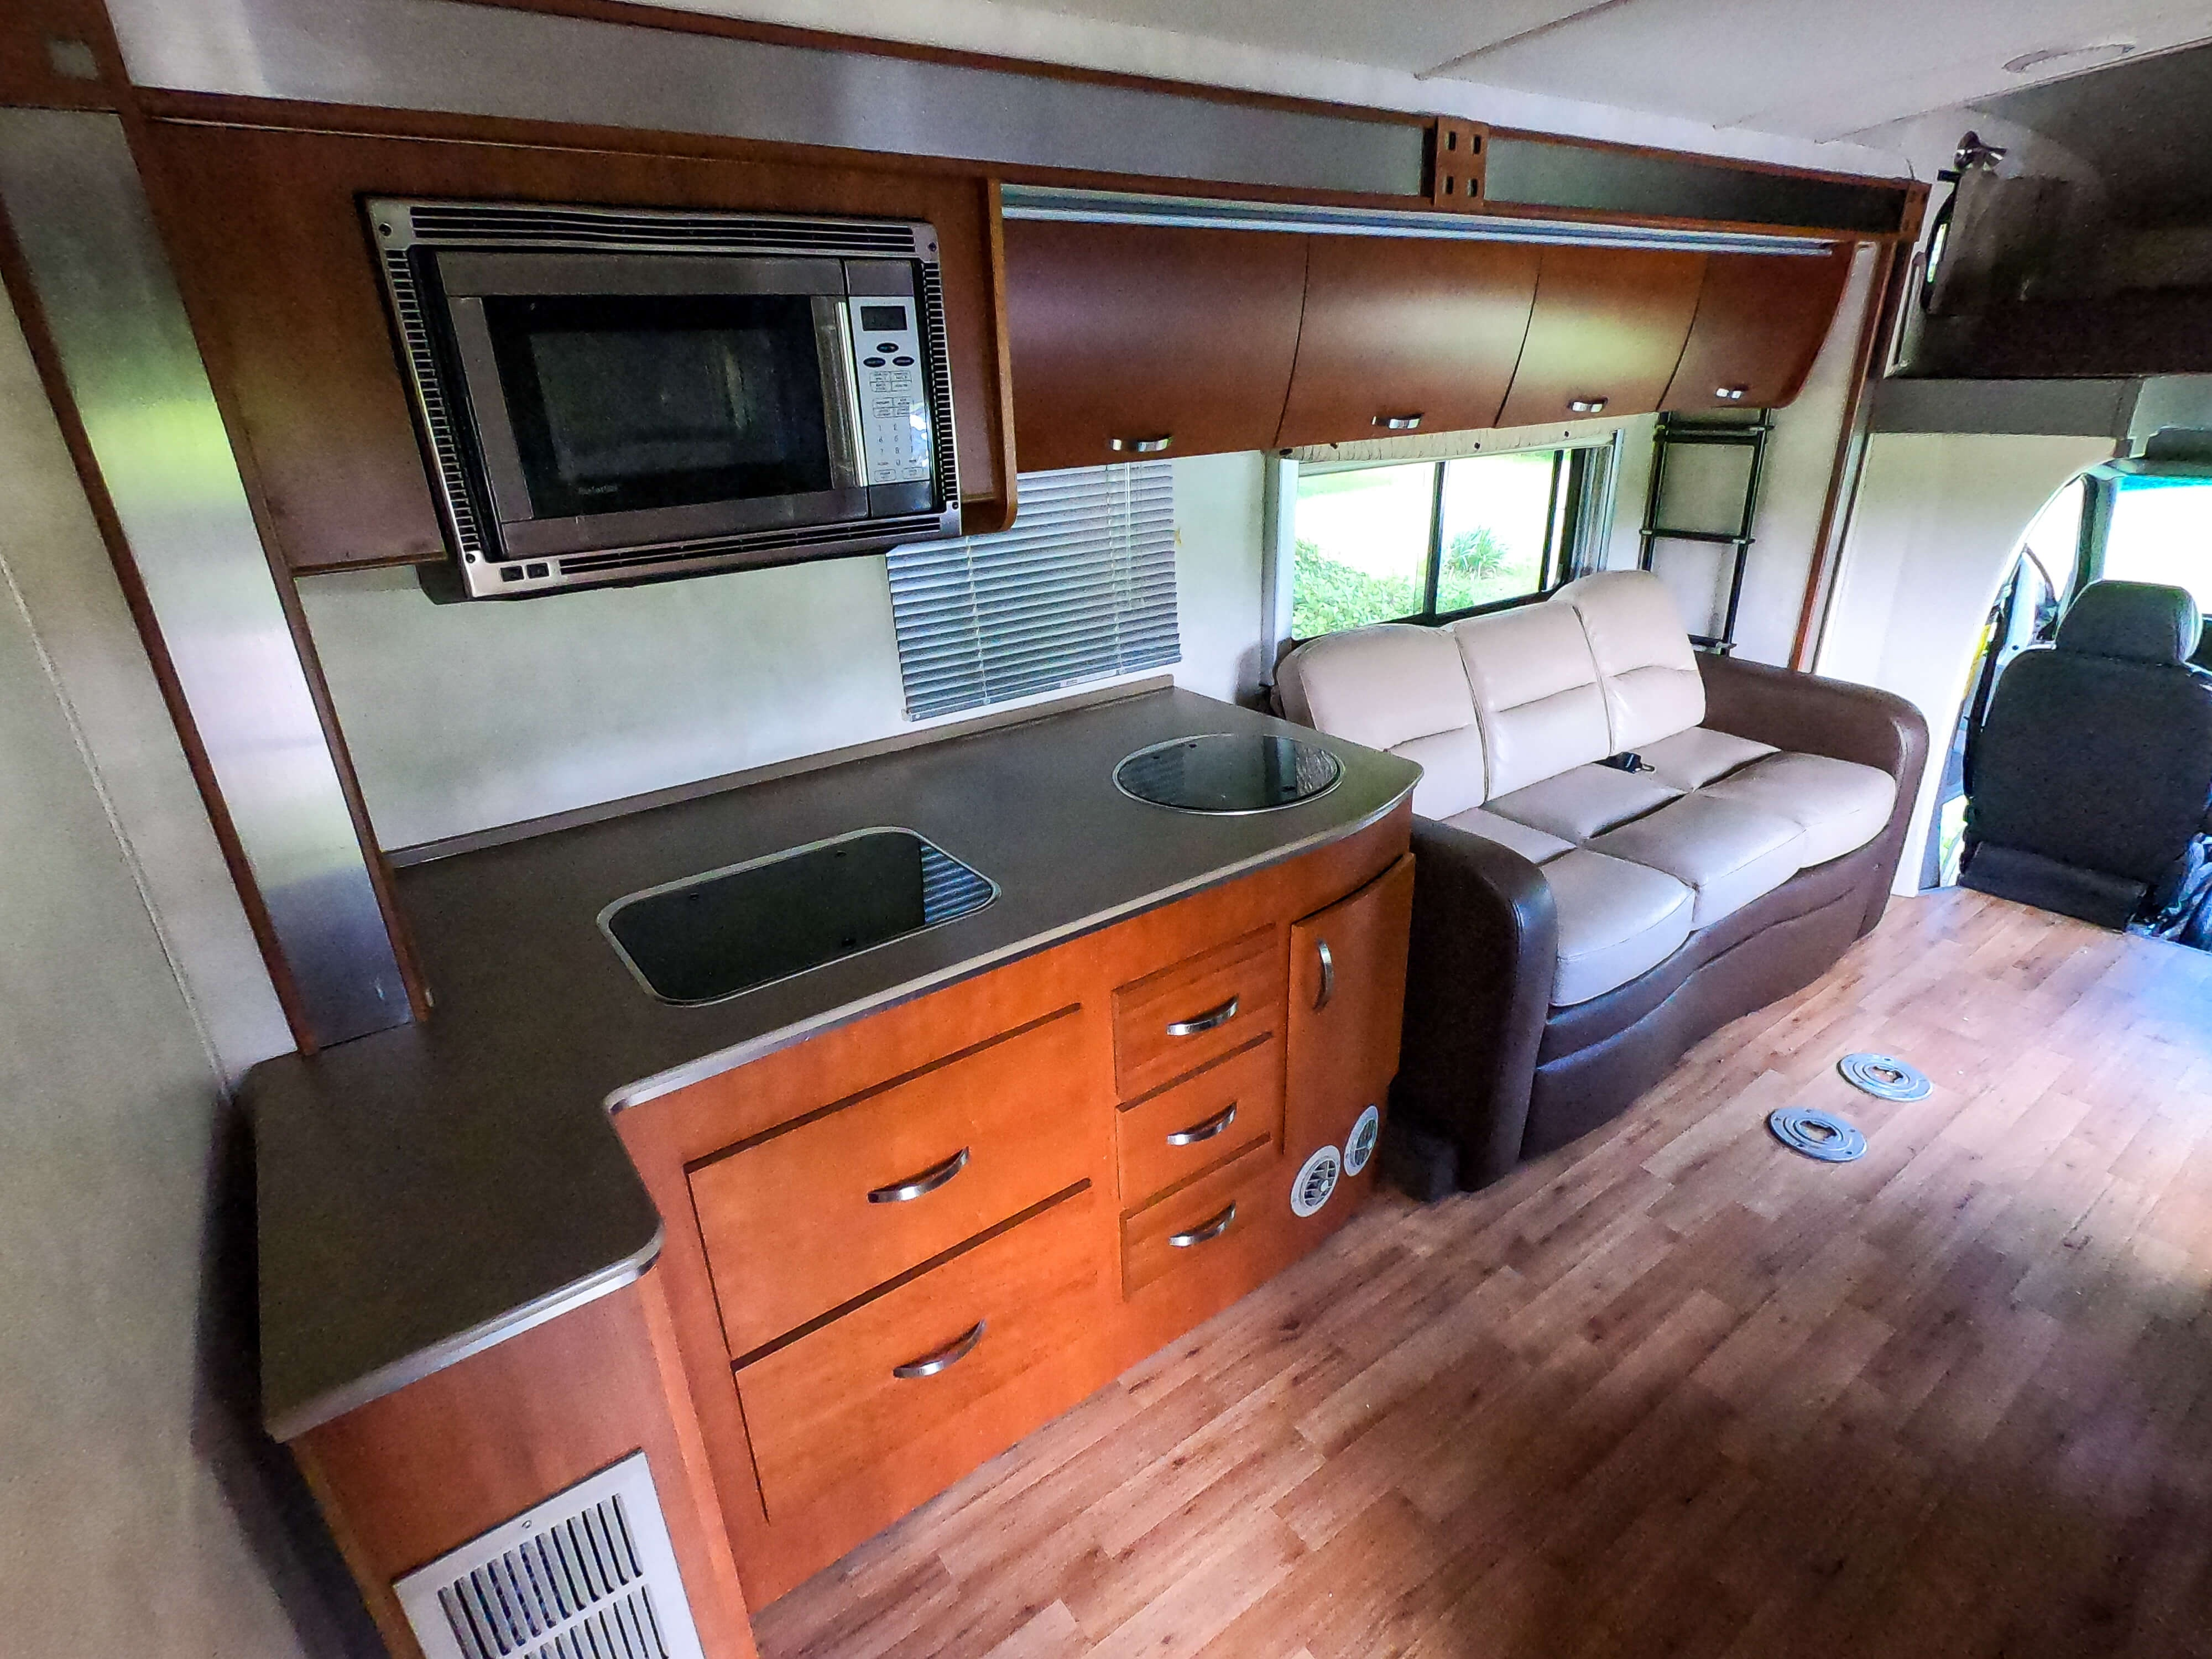 2010 Fleetwood Pulse 24S Kitchen and Living Room